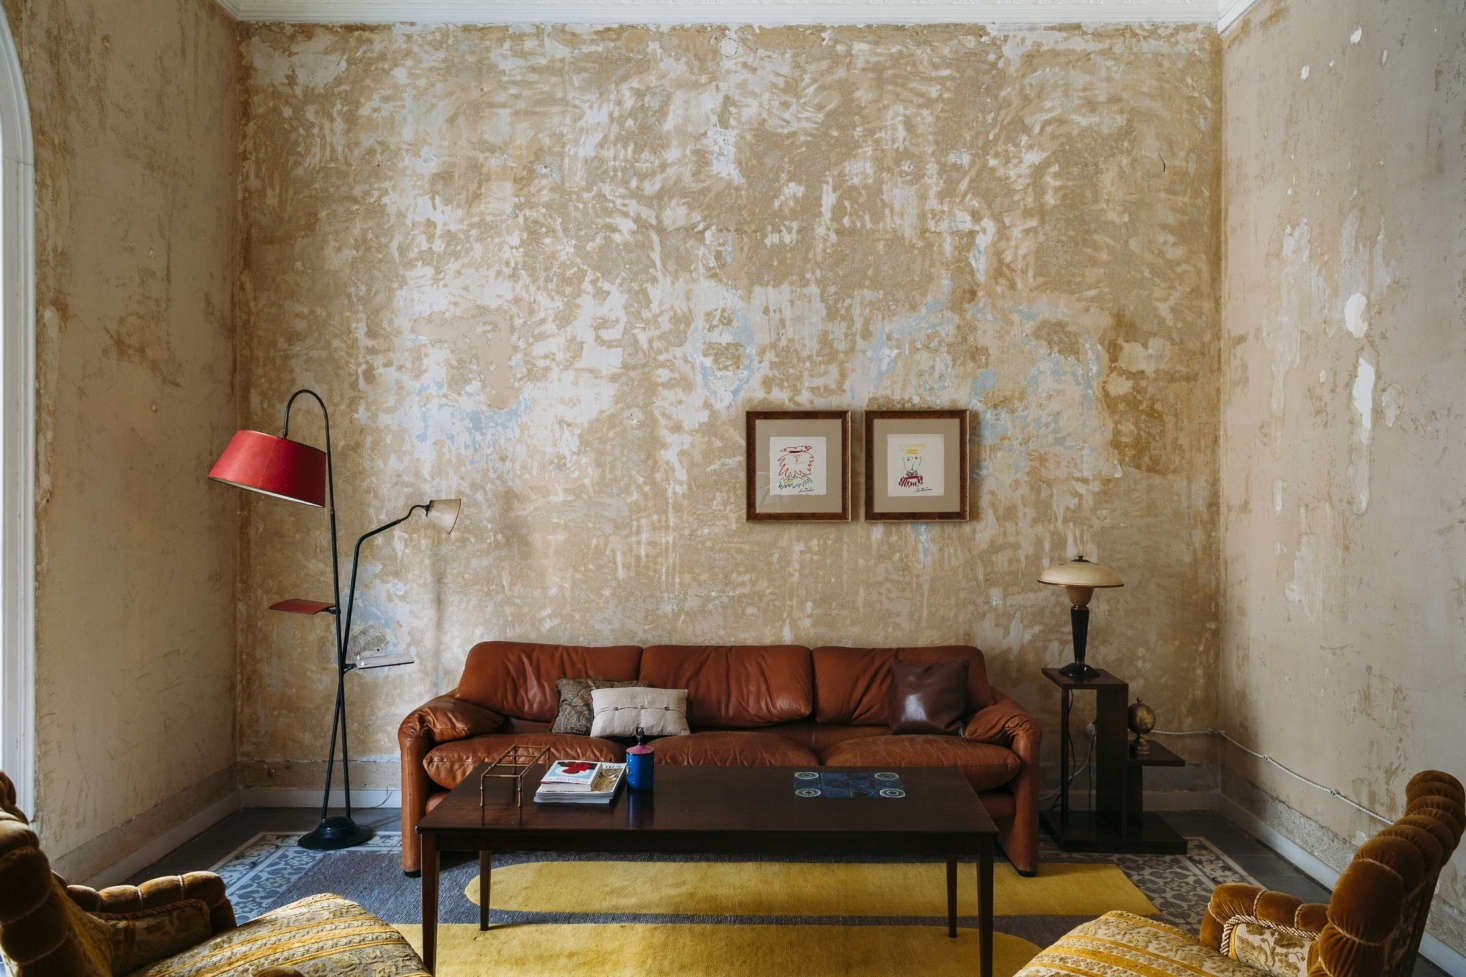 A 1970s leather sofa looks surprisingly at home in the stripped-bare living room.